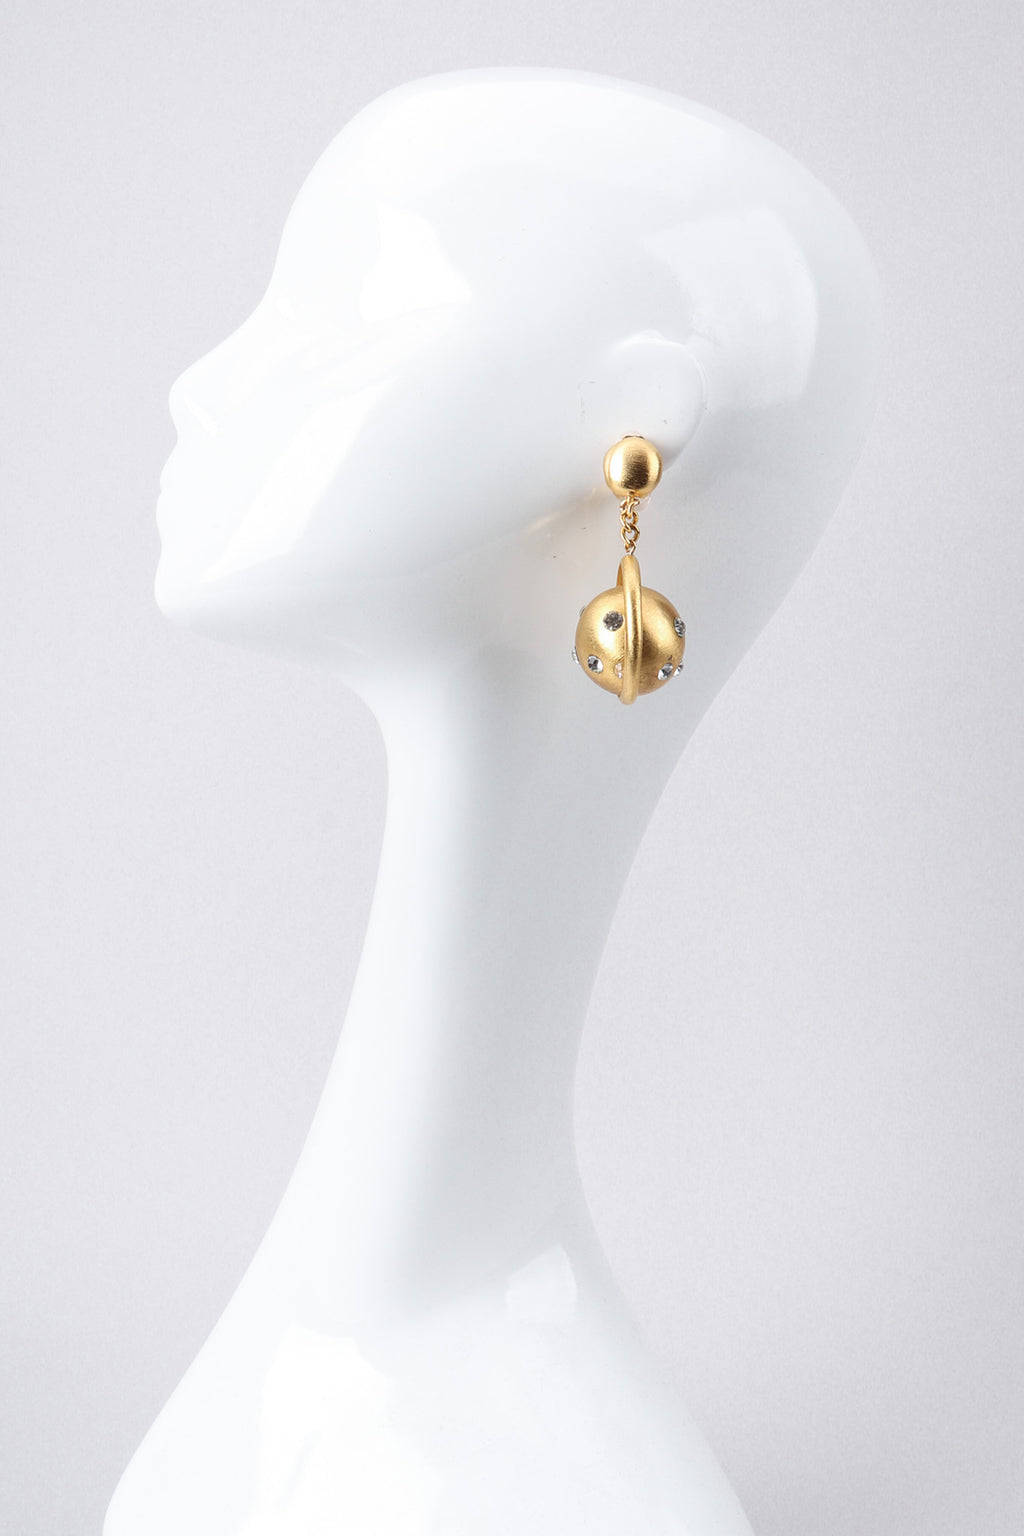 Recess Los Angeles Vintage Prince Kamy Yar Brushed Saturn Hoop Earrings